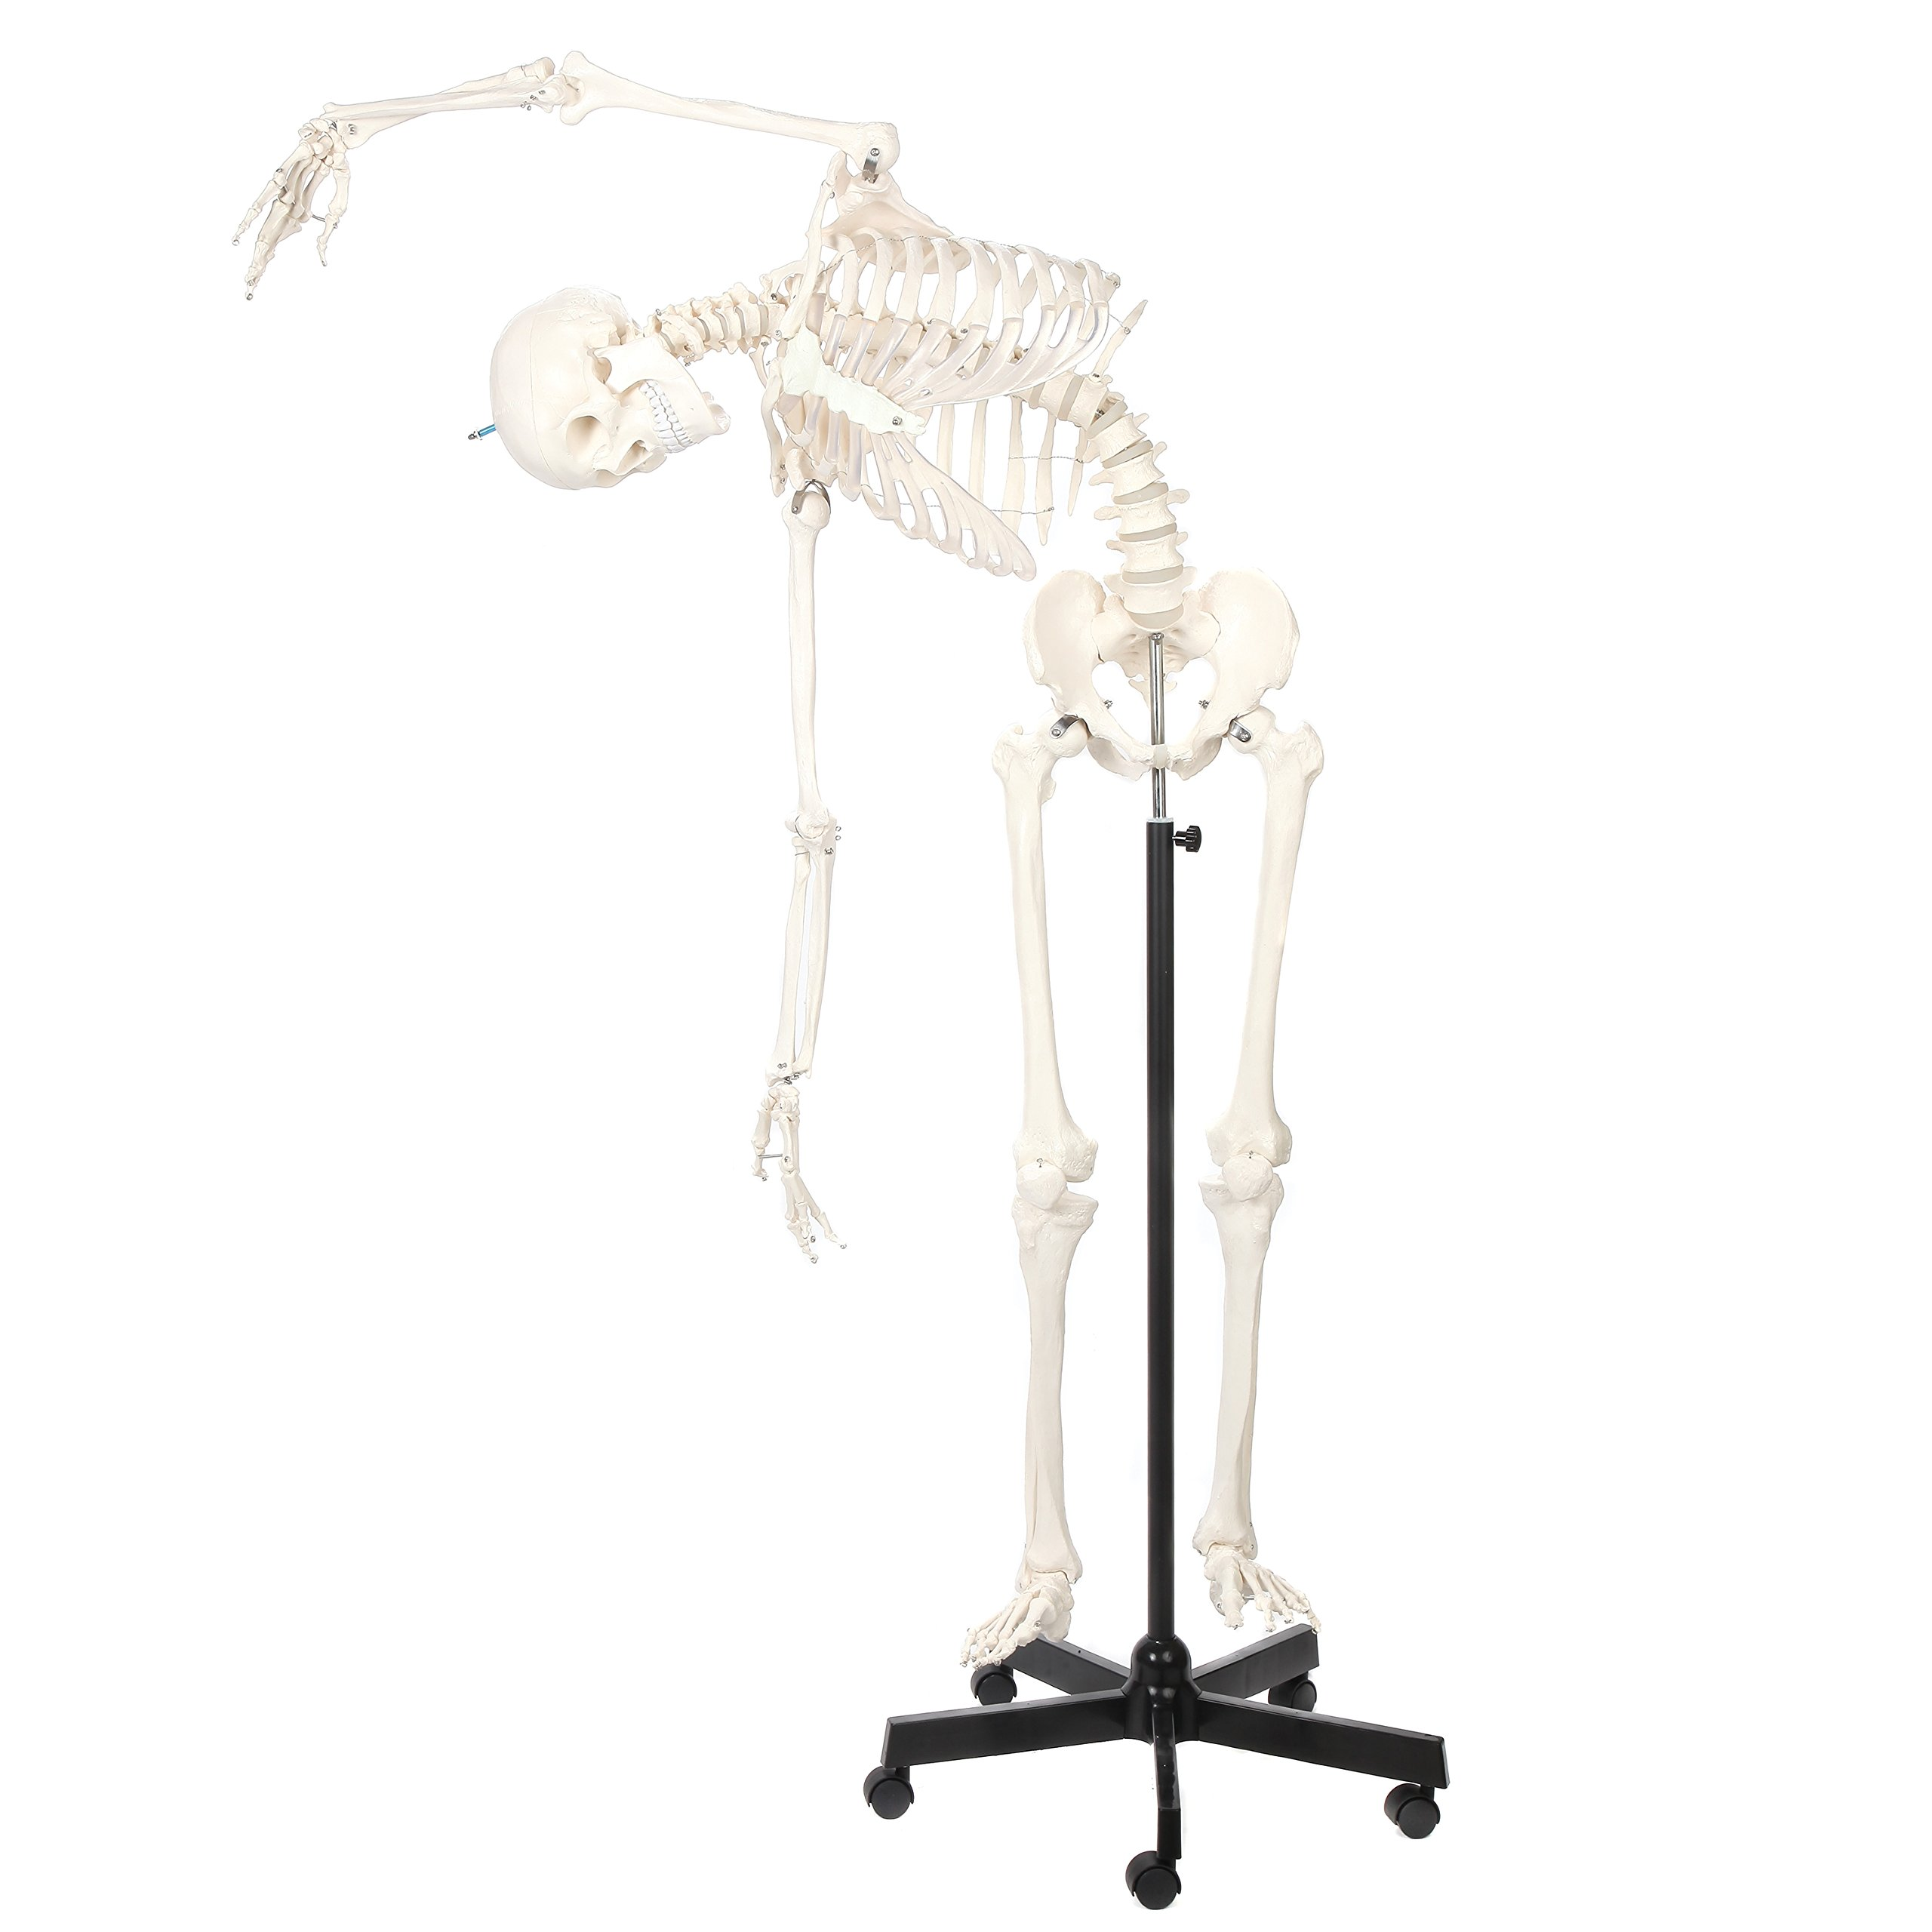 Axis Scientific Life Size Flexible Skeleton Anatomy Model   Full Size Anatomical Skeleton Model   Features a Flexible Spine That Holds Its Shape   Includes Base and 3-Year Warranty